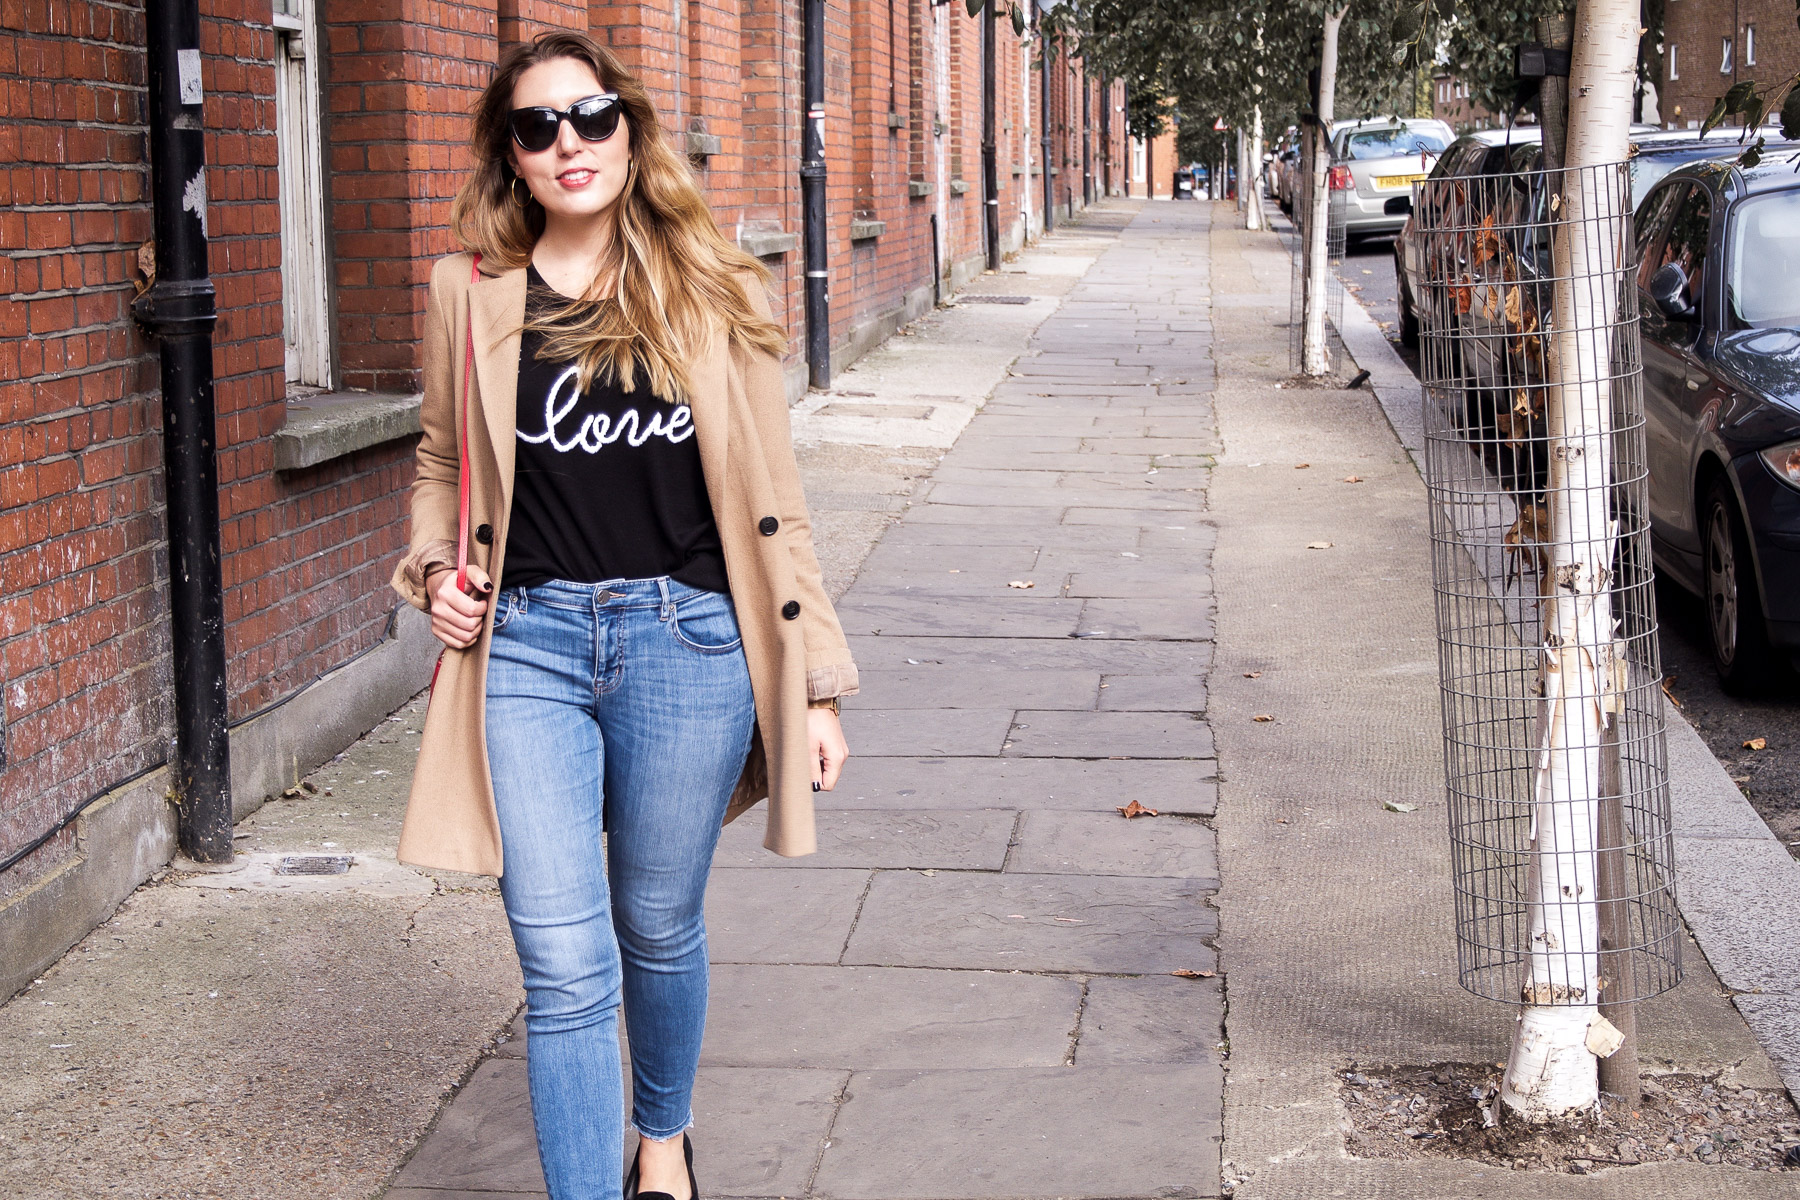 Autumn Fashion, Love Jumper, and Loafers